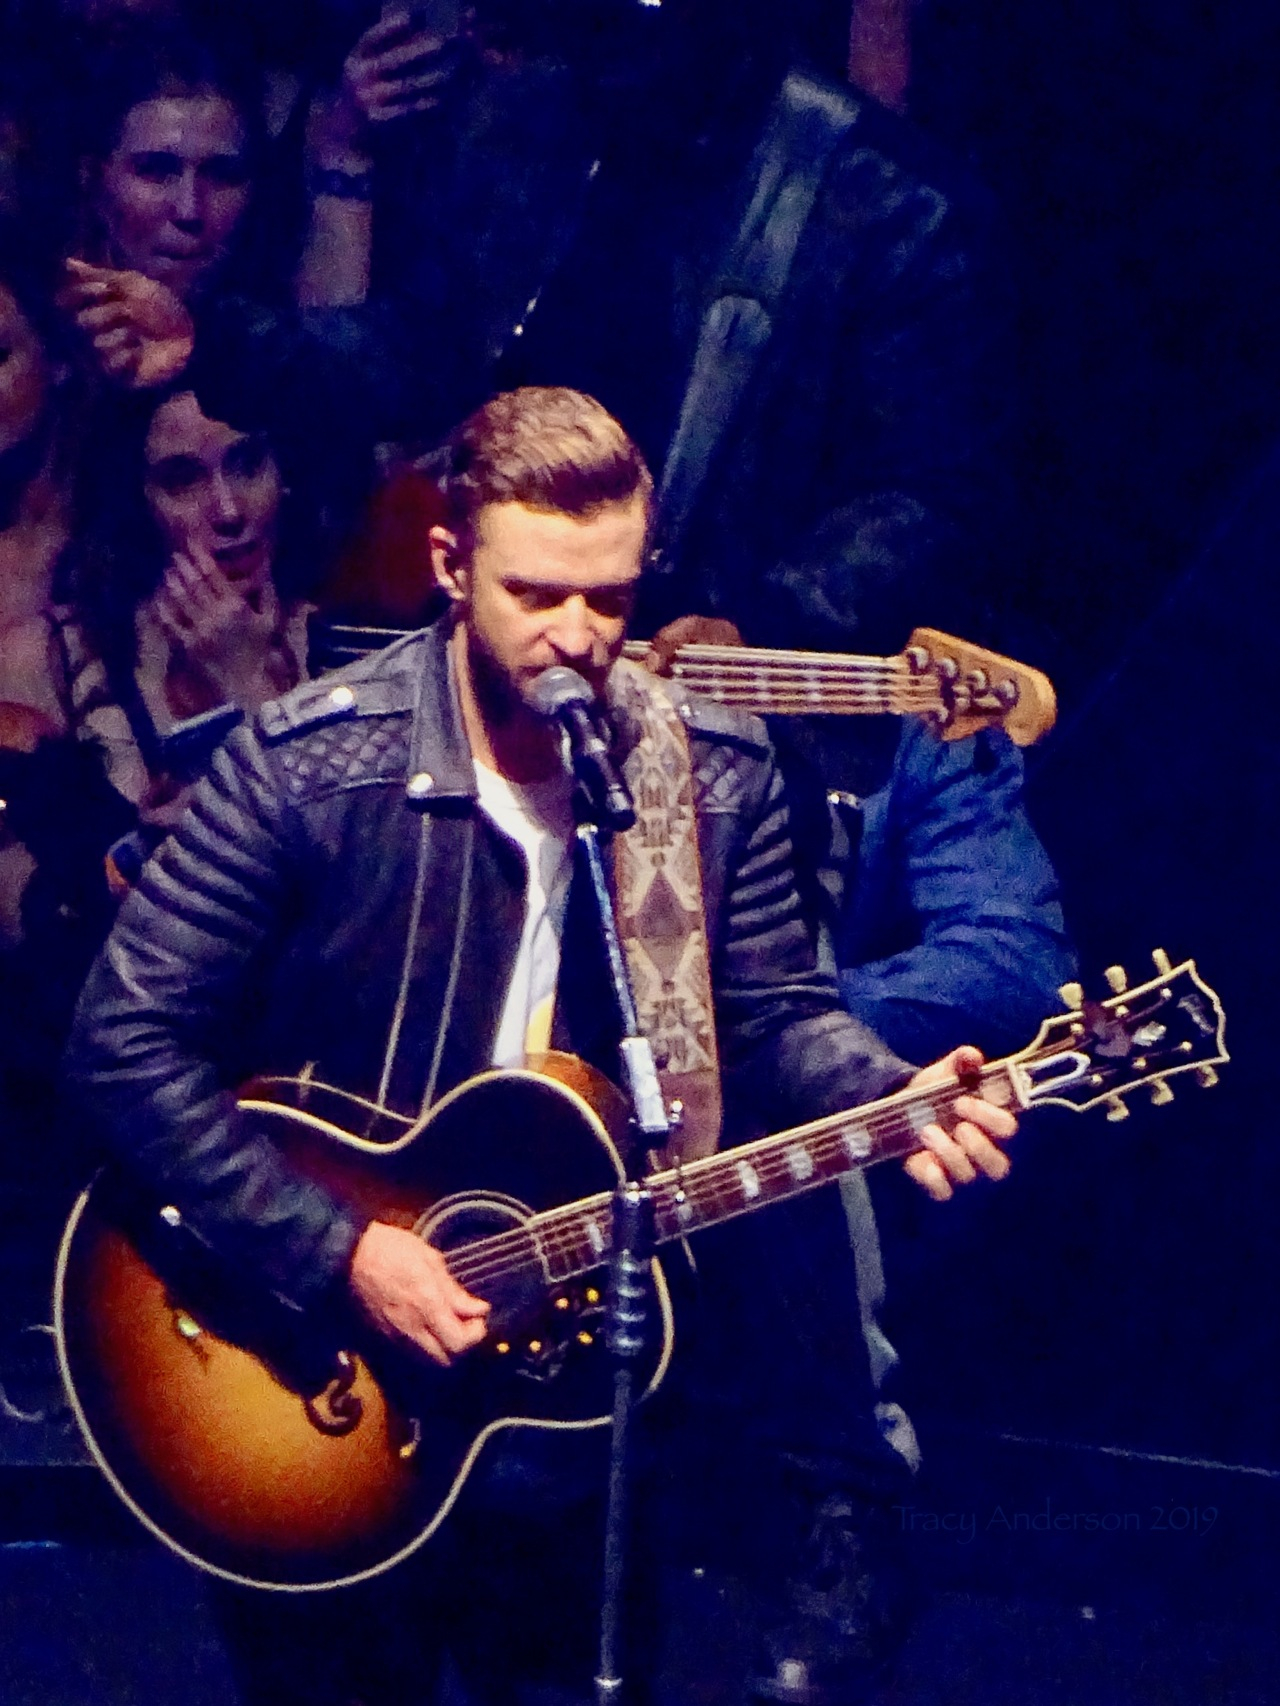 Justin Timberlake with Guitar Man Of The Woods Tour Rogers Place Feb 6 2019